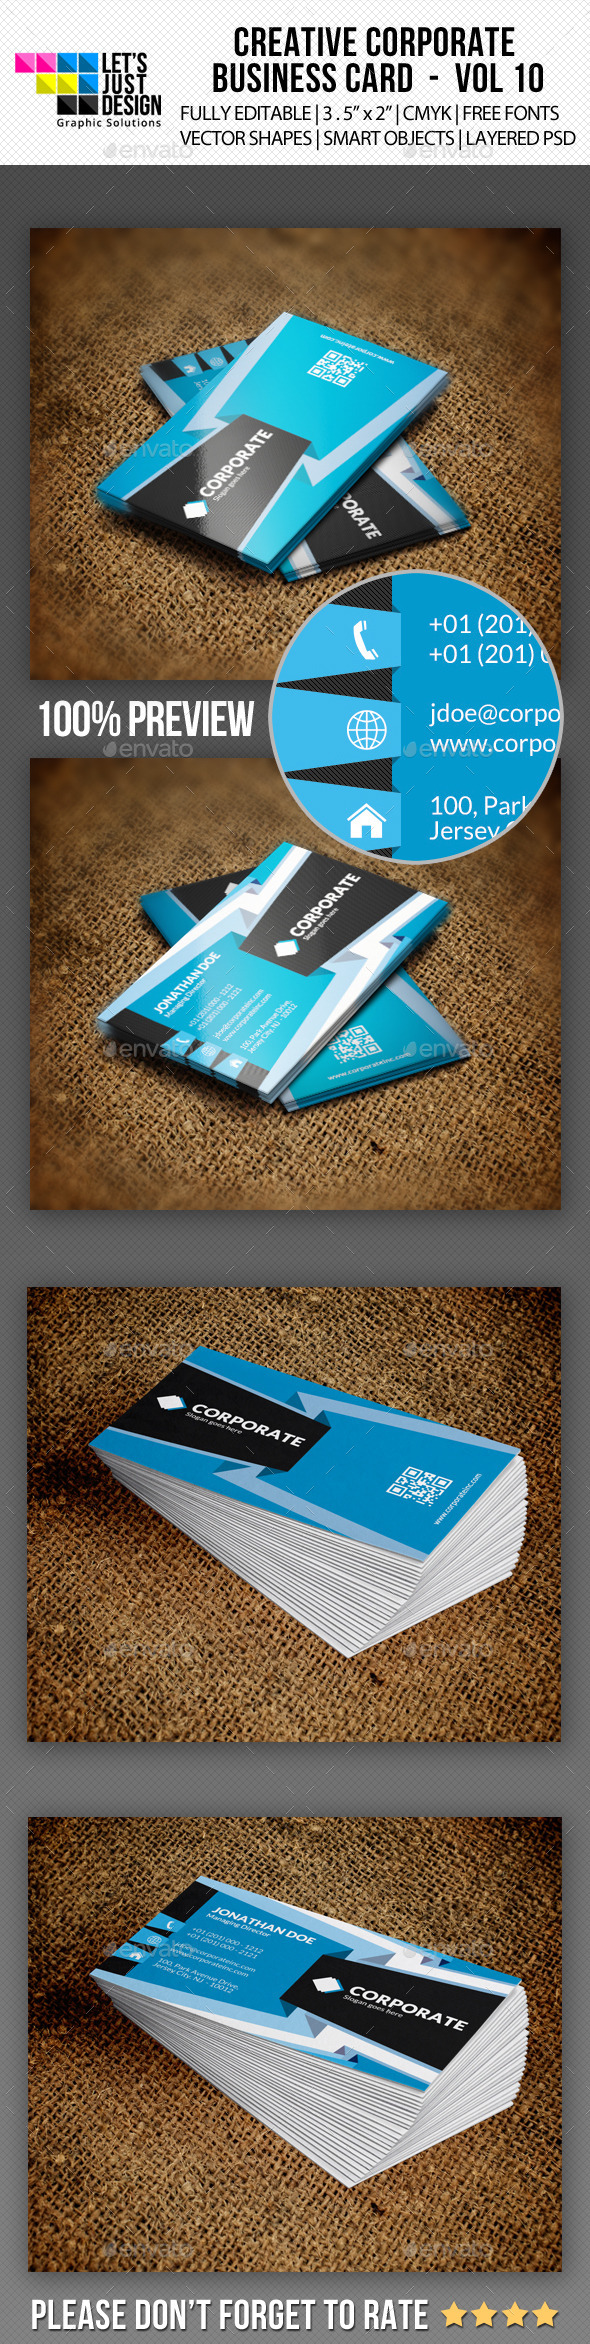 GraphicRiver Corporate Business Card Vol 10 10399726